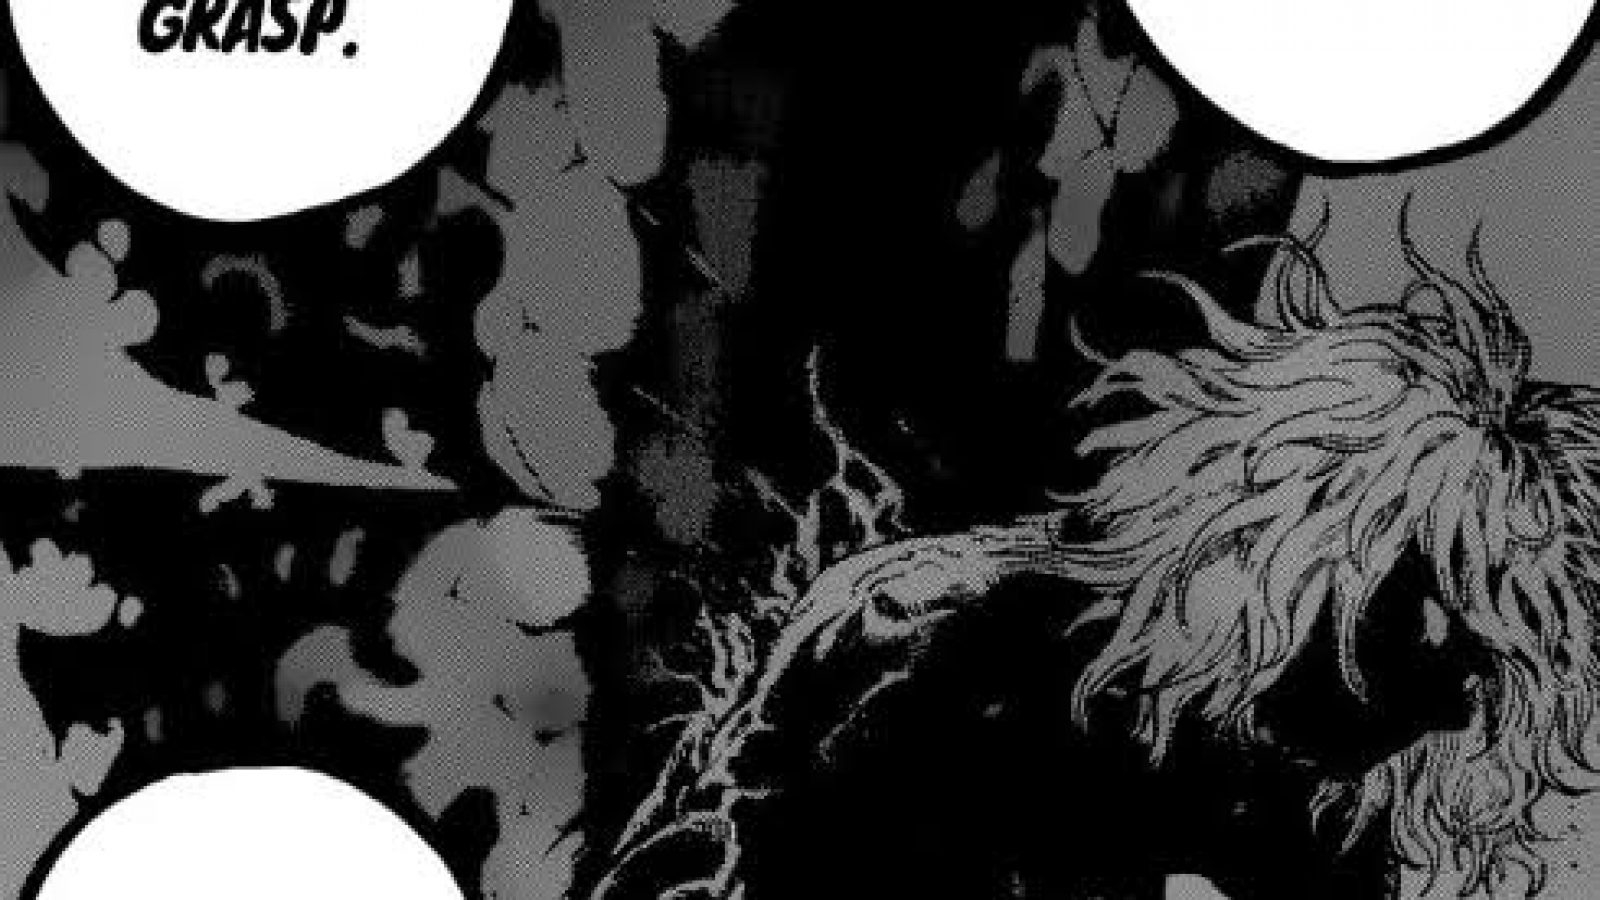 my-hero-academia-new-all-for-one's-user-revealed-tomura-shigraki-has-quirk-one-for-all